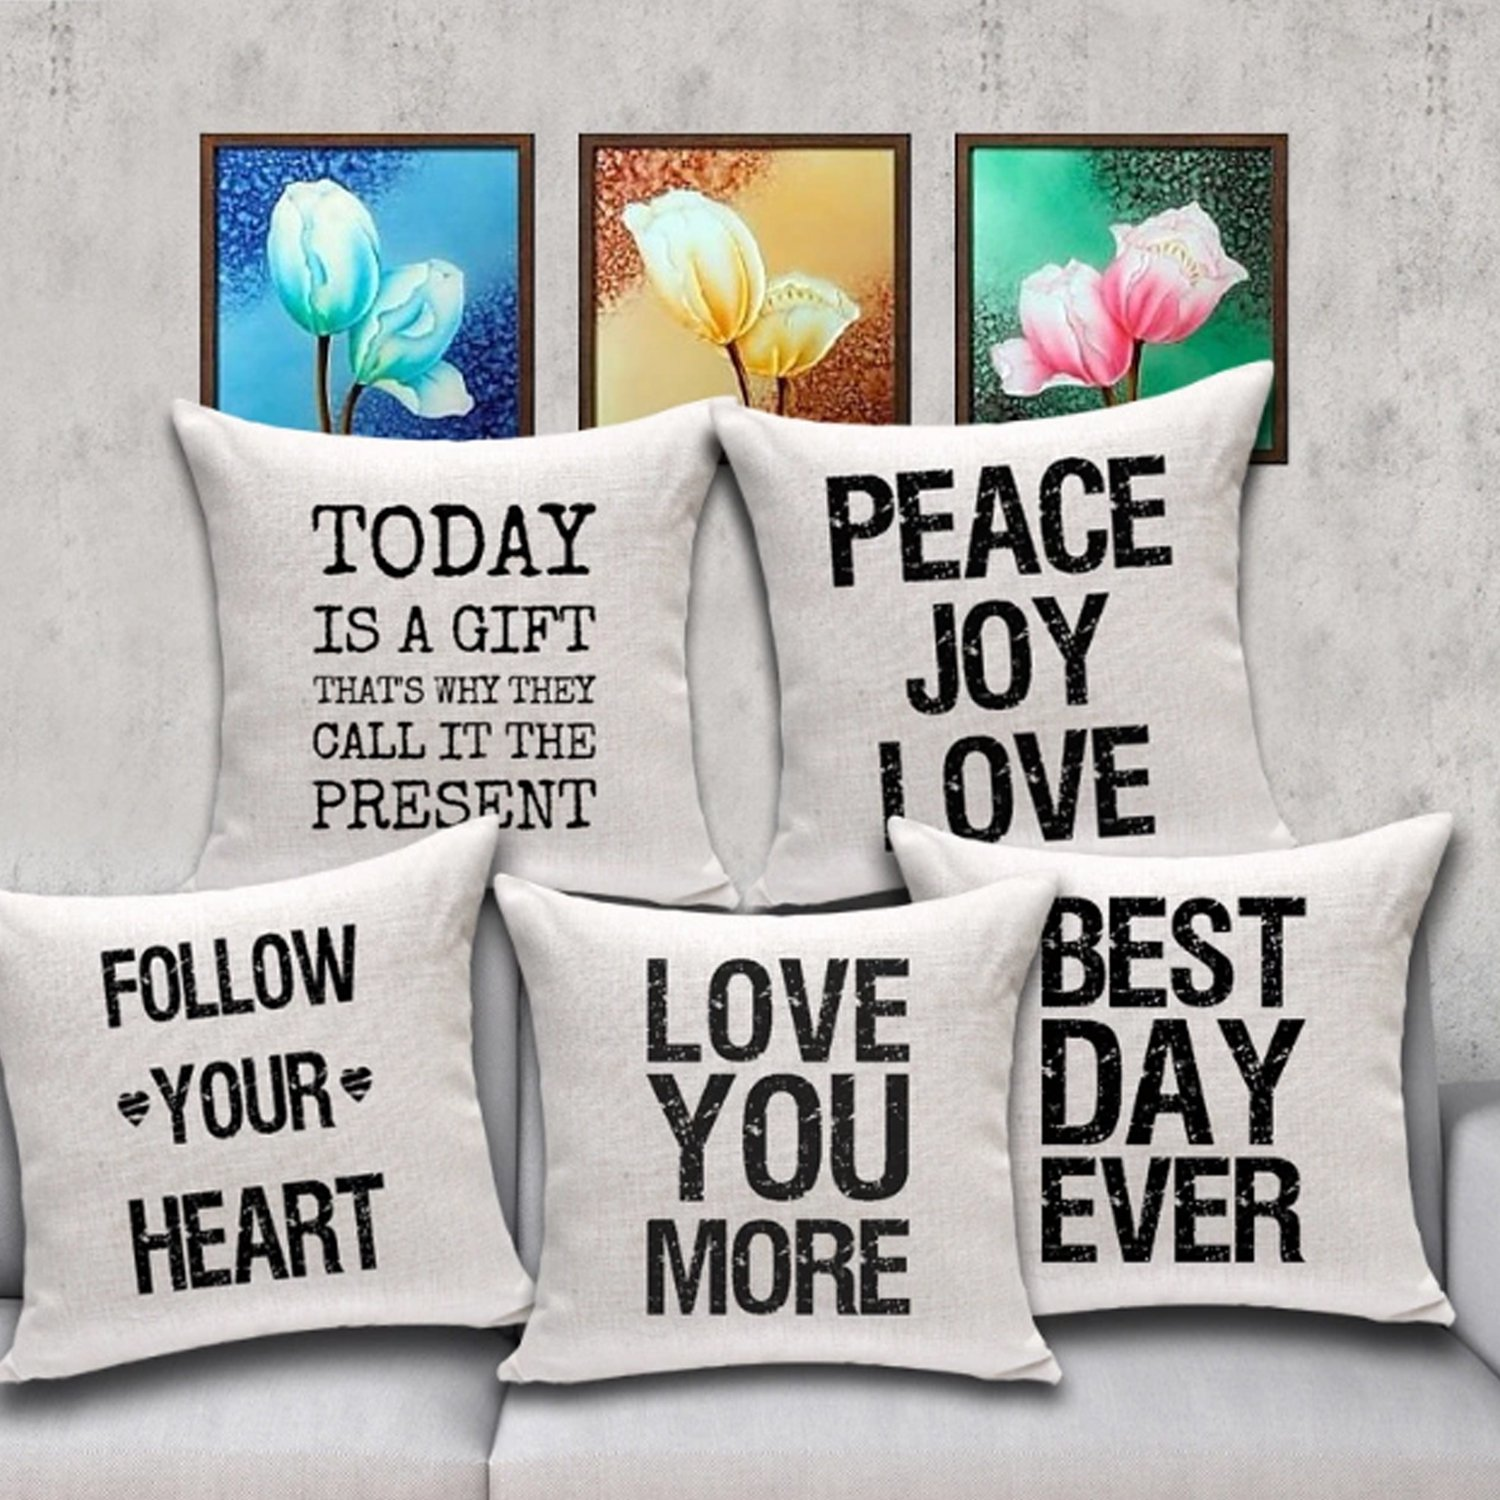 2, Floral Live Simply 2 Pcs Meaningful English Writing Inspirational Words Quotable Quotes Cotton Linen Decorative Pillowcase Cushion Cover for Sofa Throw Pillow Case 18 X 18 Inch Queenie/®